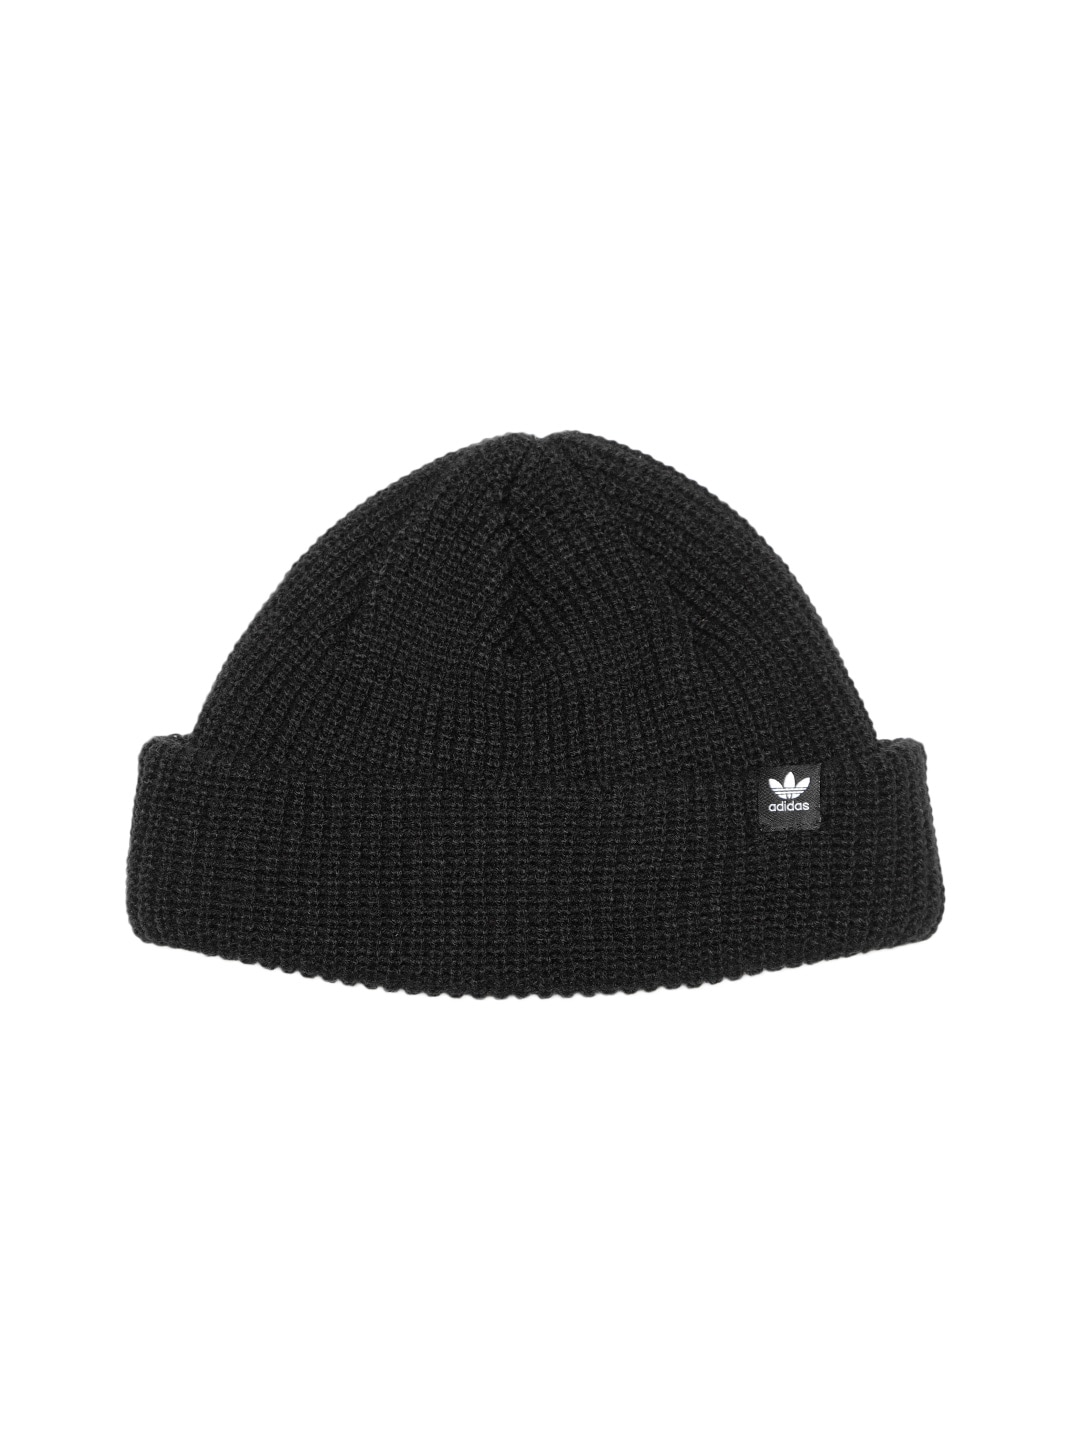 852882574d2b8 Adidas Originals Caps - Buy Adidas Originals Caps Online in India